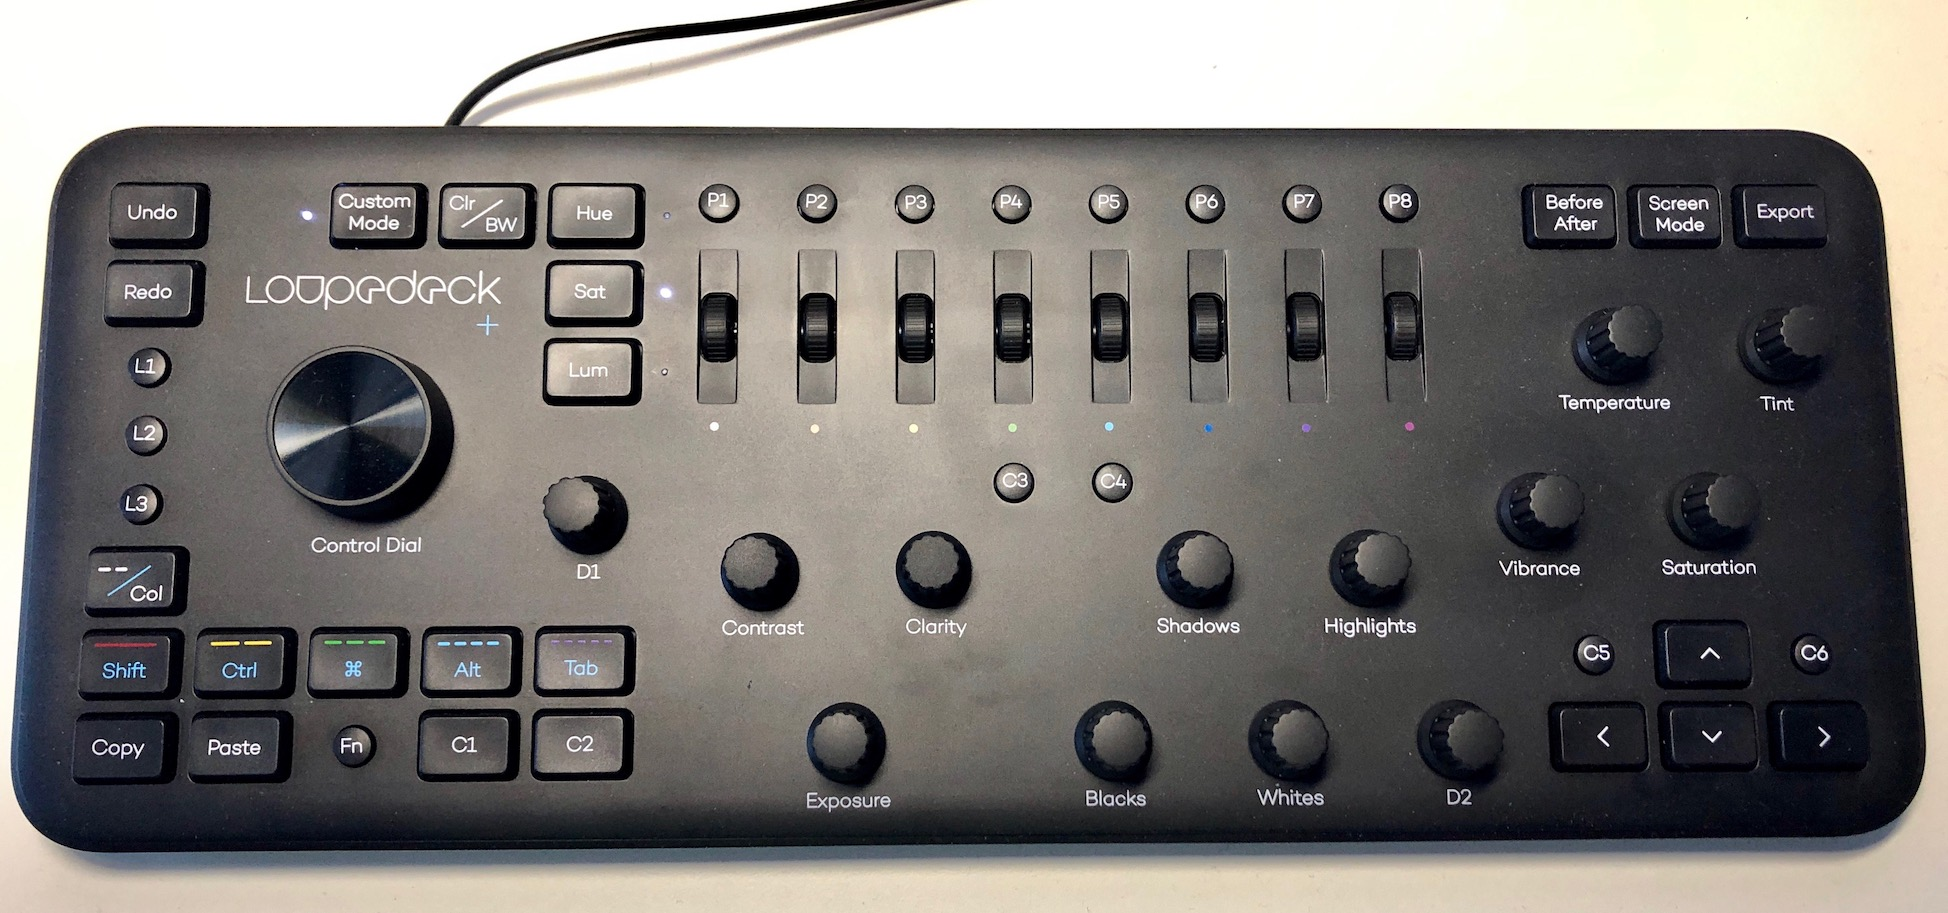 Review The Loupedeck Control Surface And Its Adobe